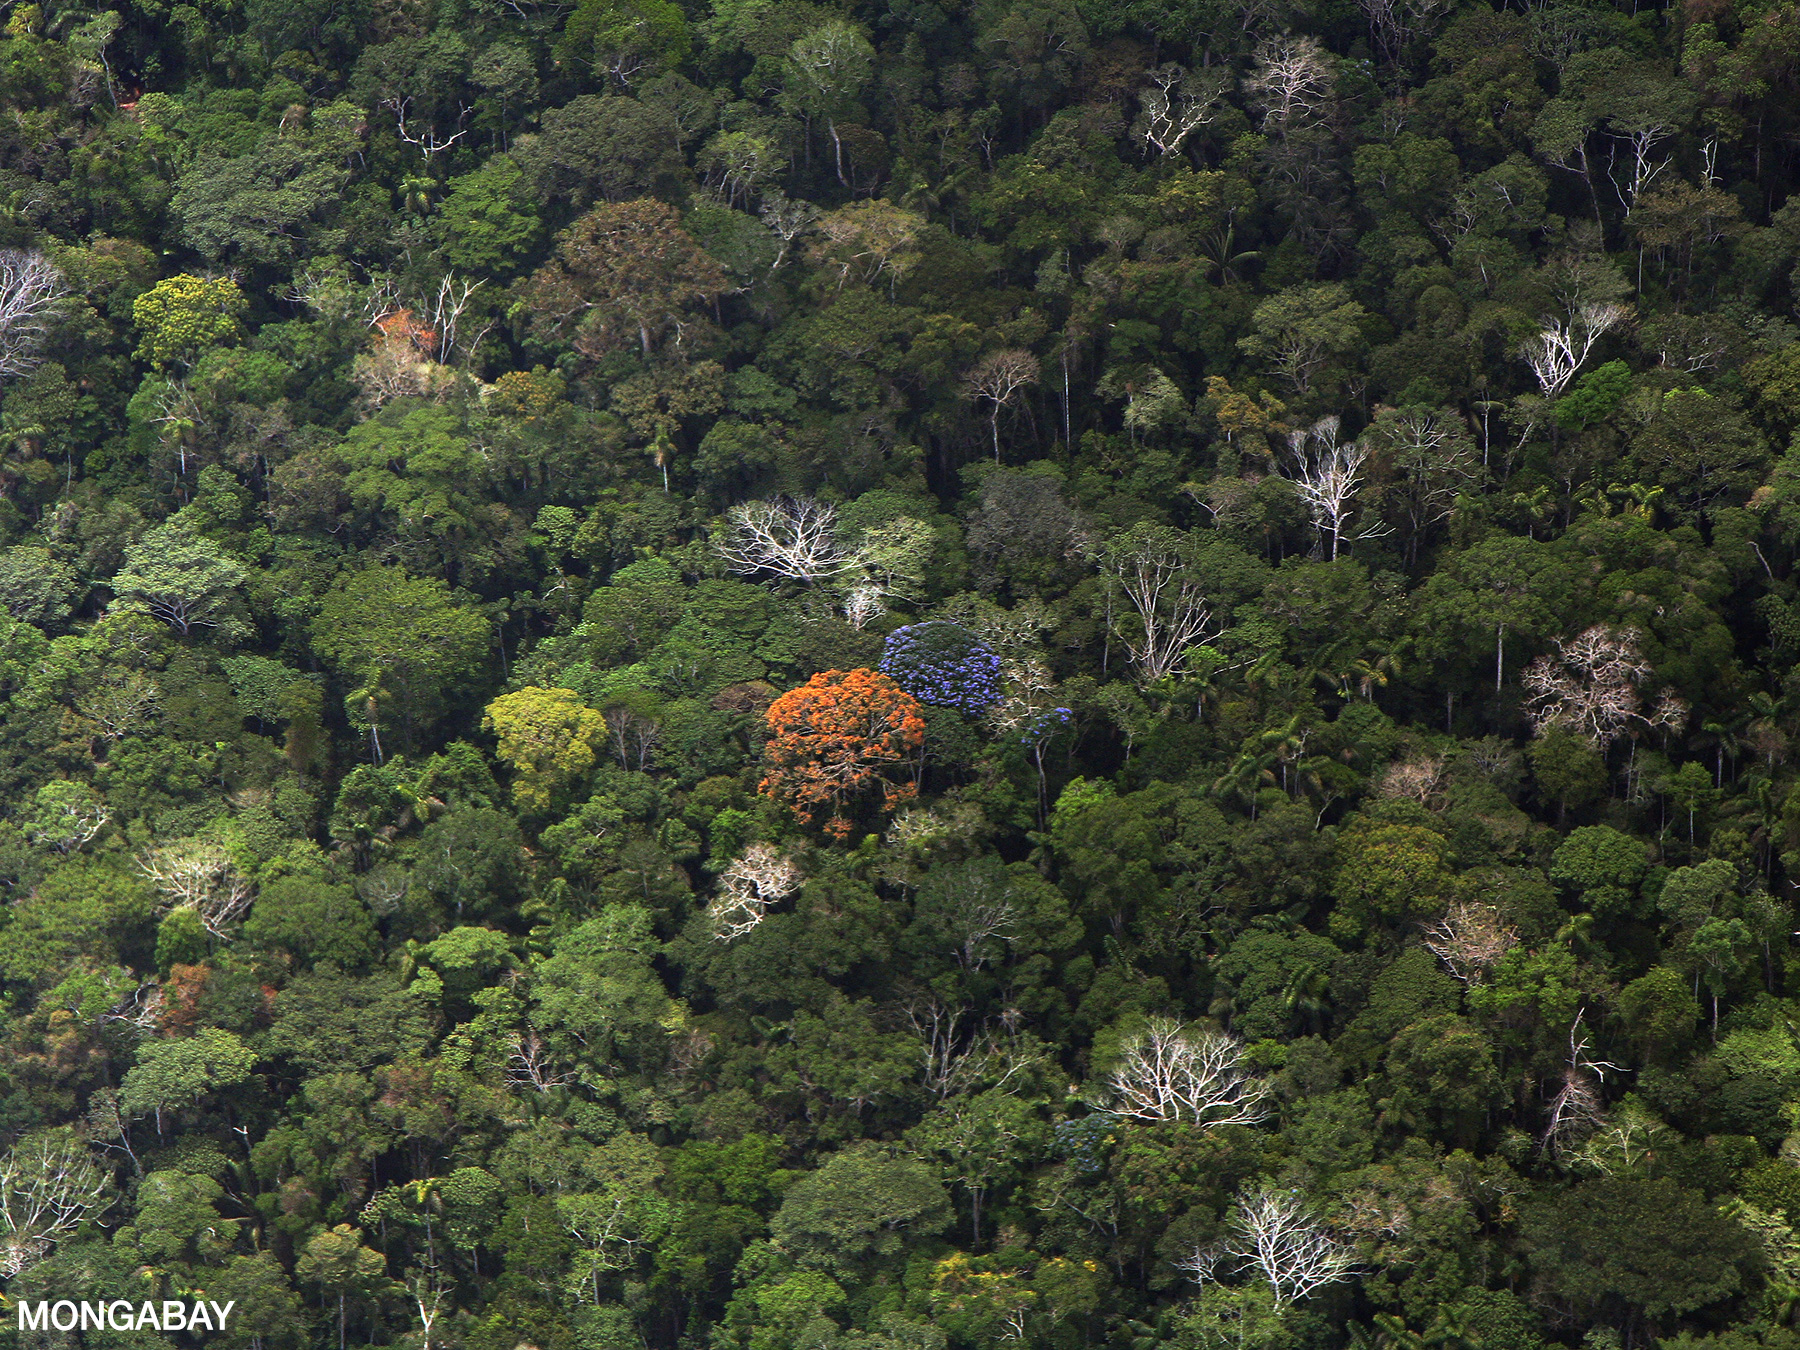 In a tropical rainforest biome, some decomposers are insects, bacteria and fungi that live on the forest floor. Ecology Of The Amazon Rainforest